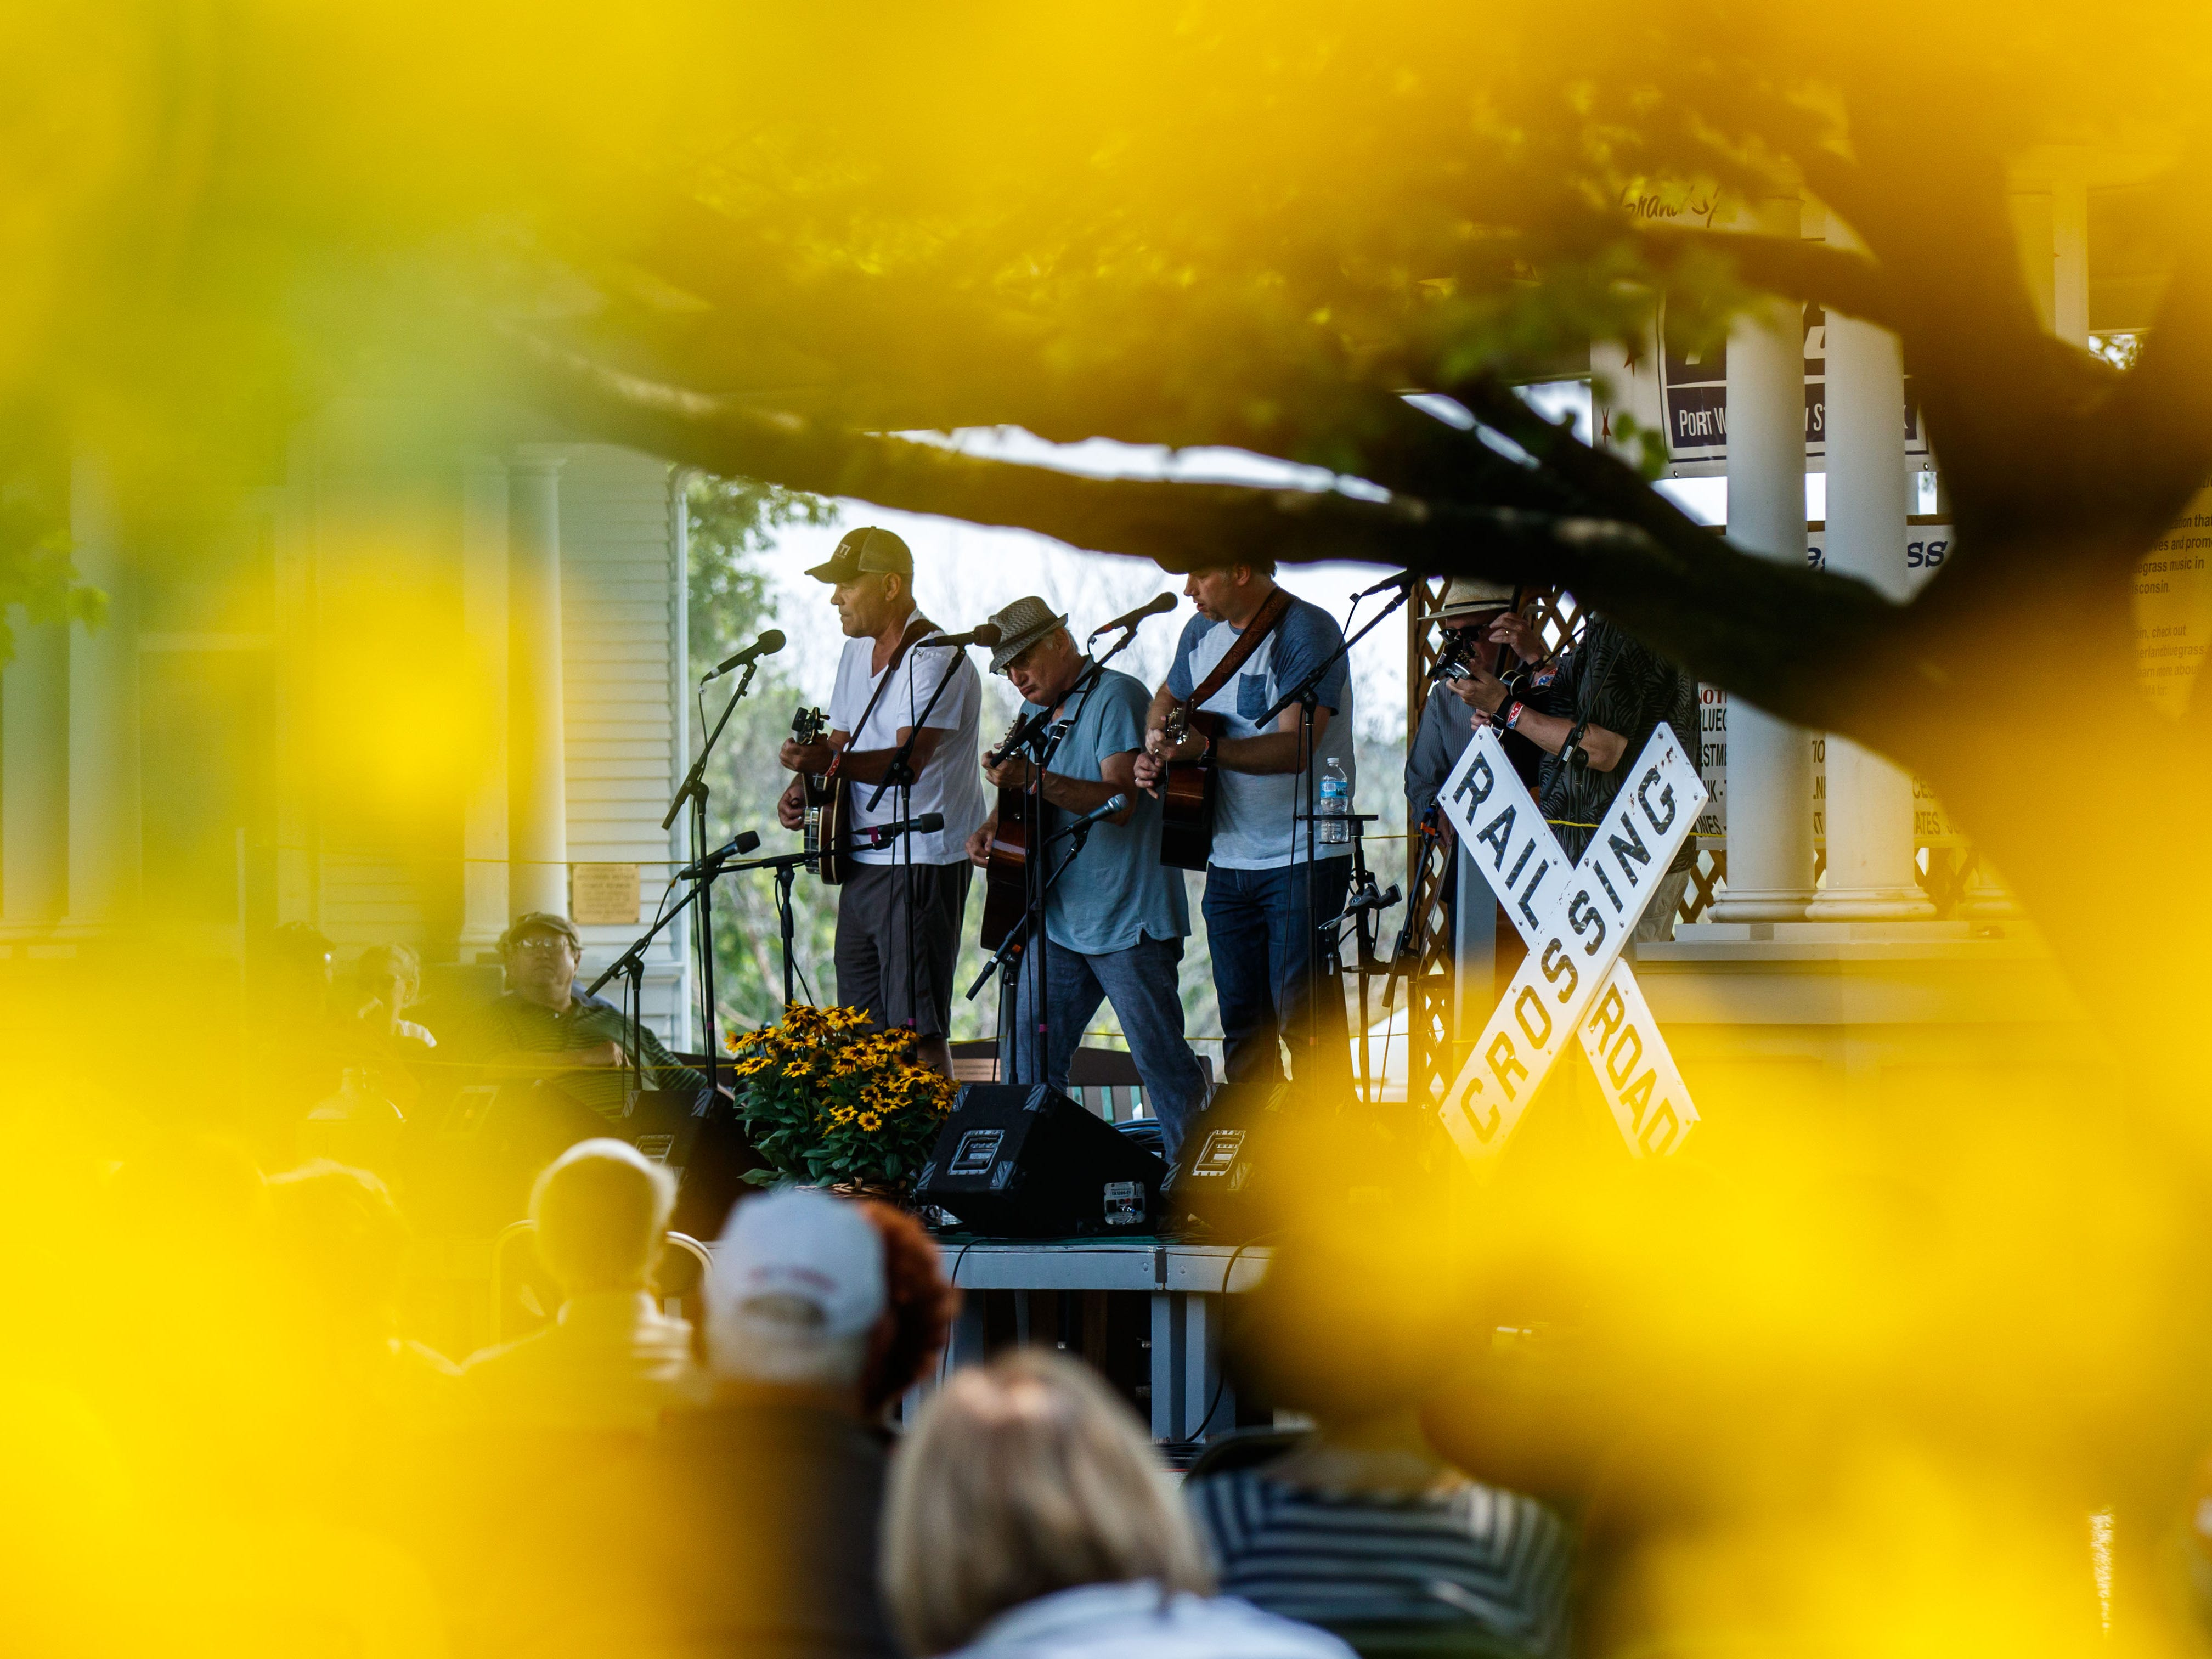 The band Sawdust Symphony is seen through colorful foliage at Ozaukee County Pioneer Village in Saukville during Bluegrass at the Village on Sunday, August 12, 2018. The annual event features live music, food and beverages, crafts, raffle items and more.